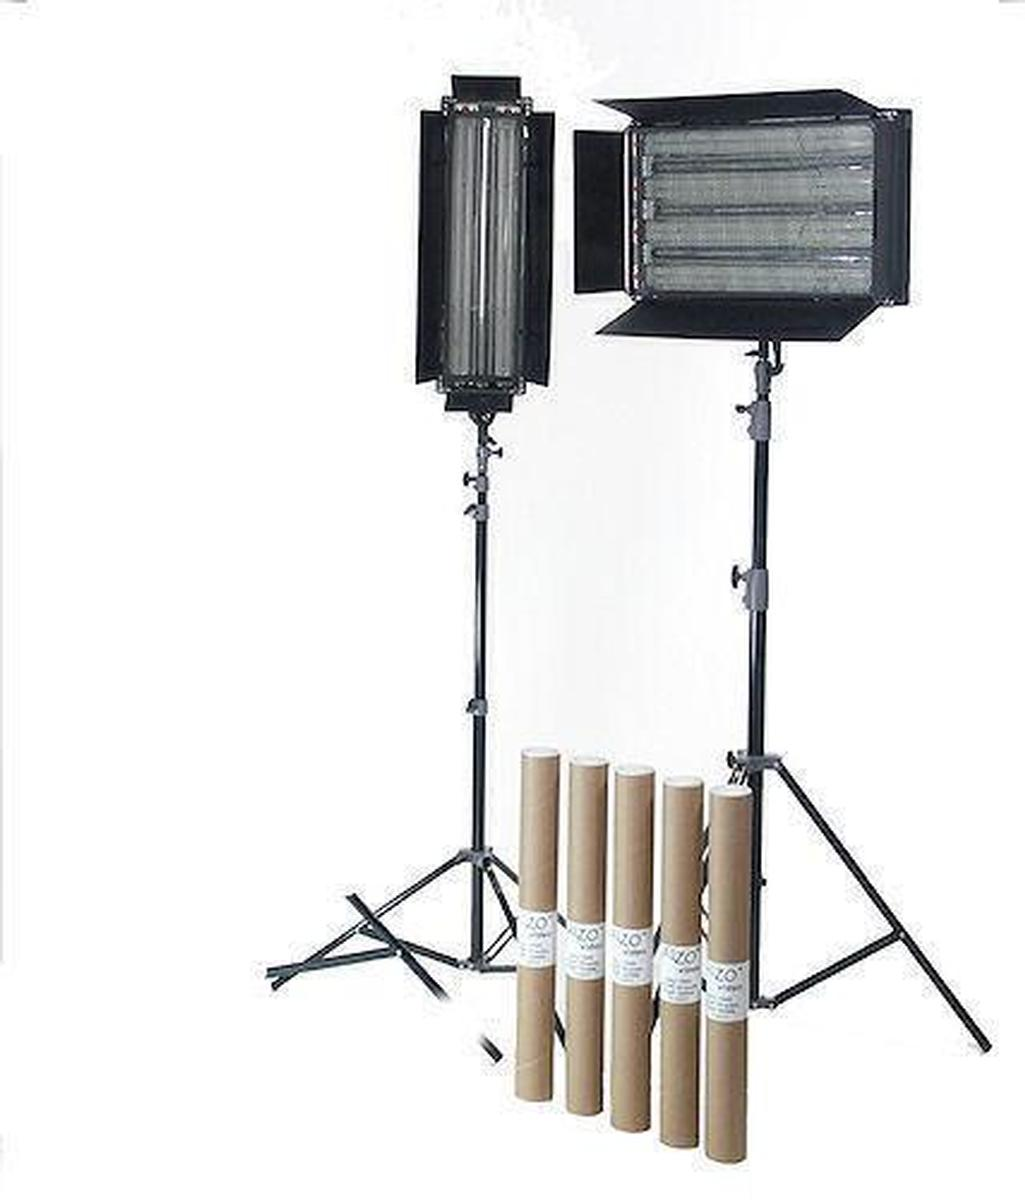 ALZO Digital - 1816  sc 1 st  AV-iQ & 1816 | Dimmable Video Pan-L-Lite Quad-Twin 2-Light Kit | ALZO ...